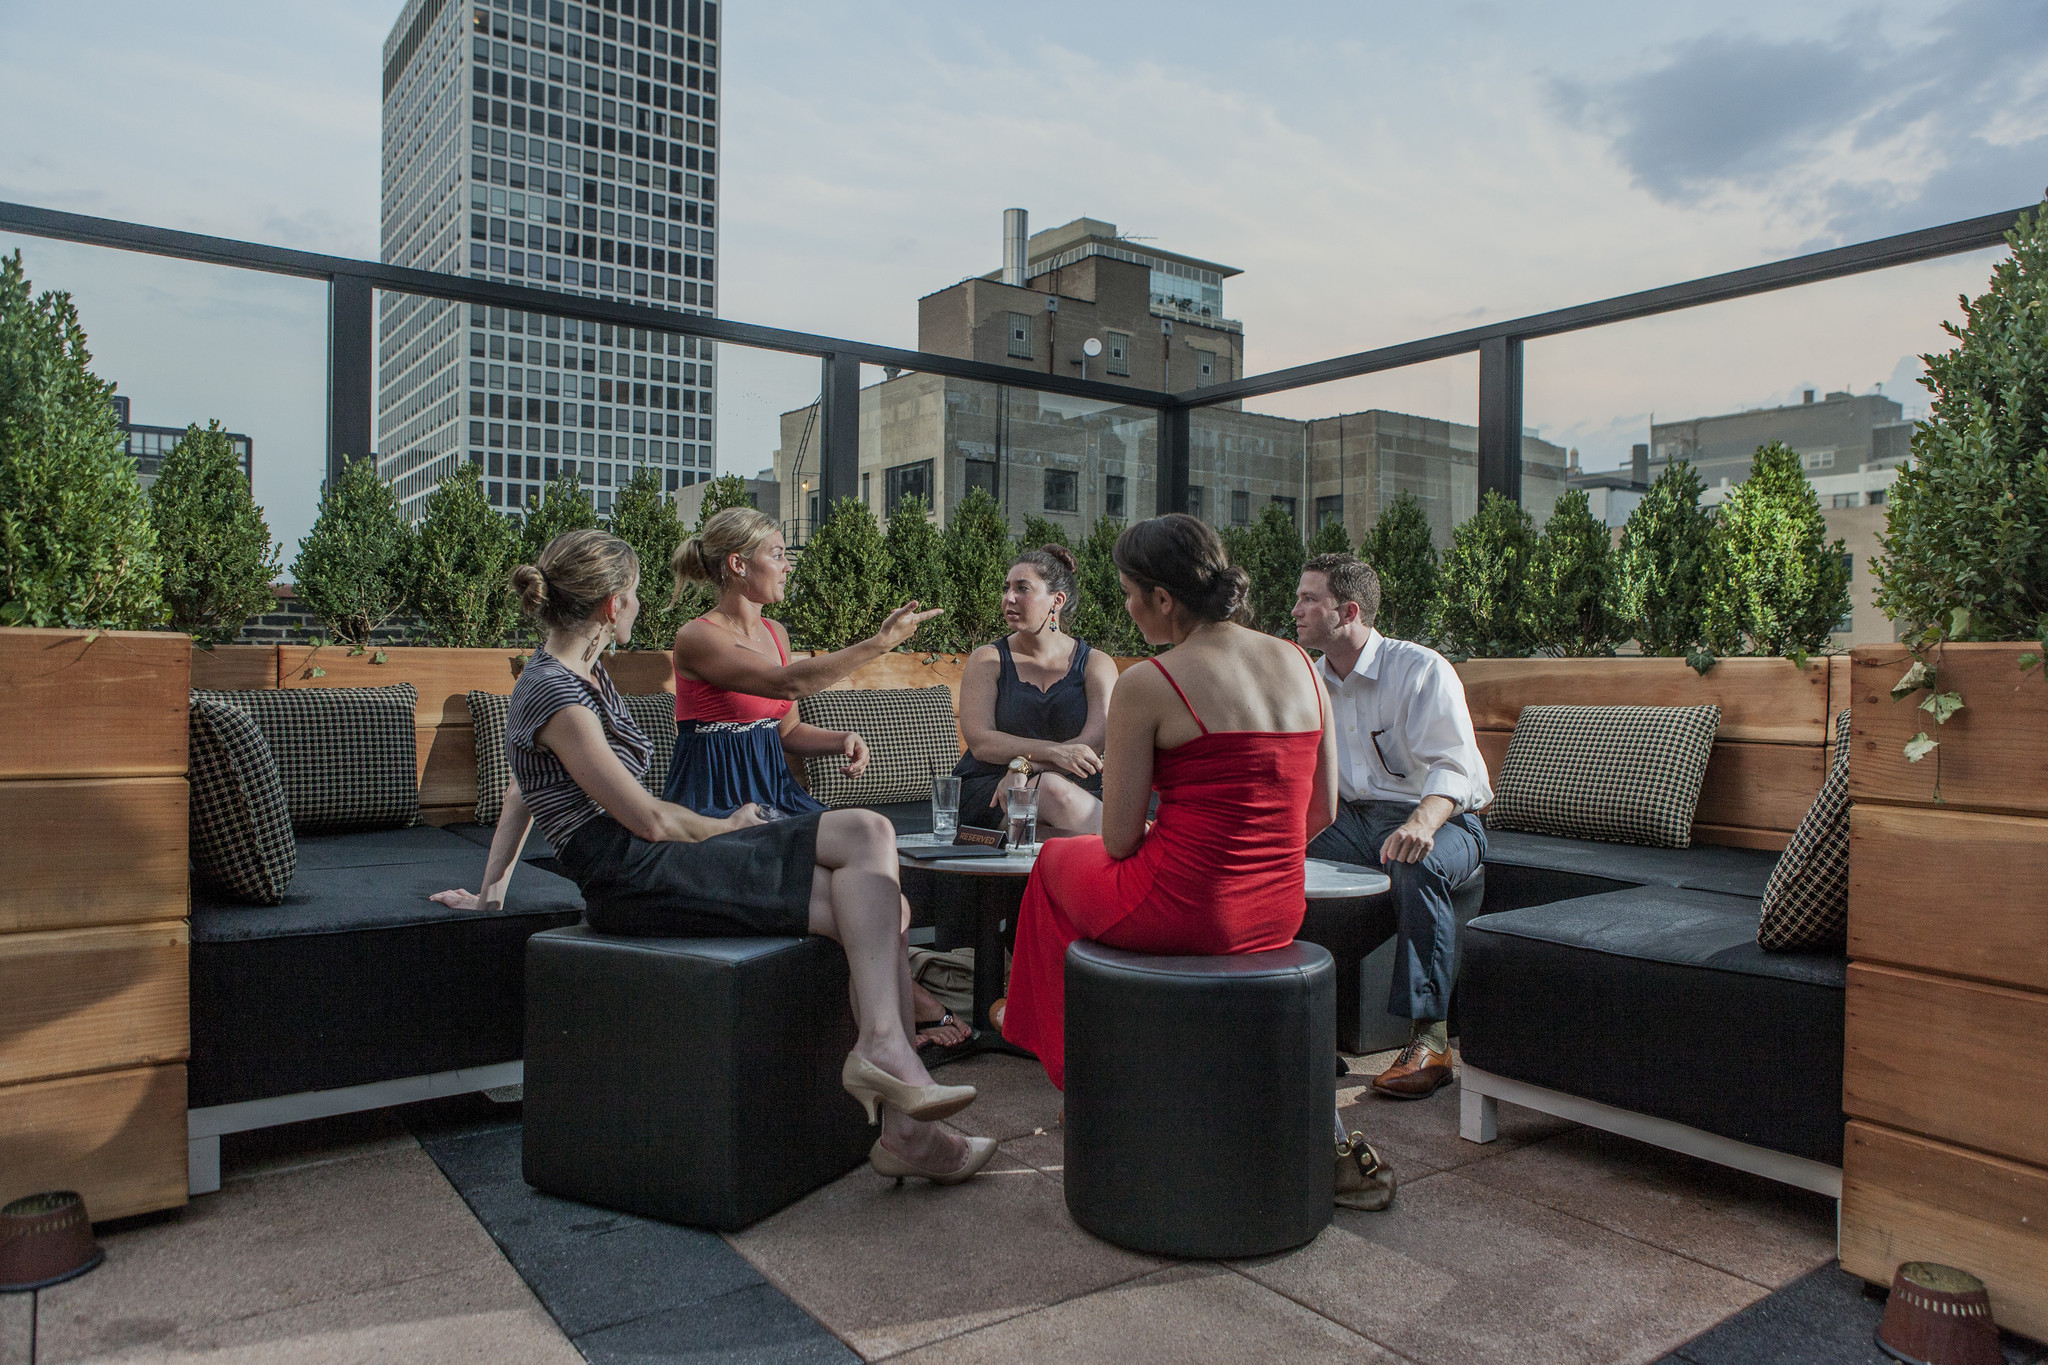 Chicago patios rooftops open for season - RedEye Chicago